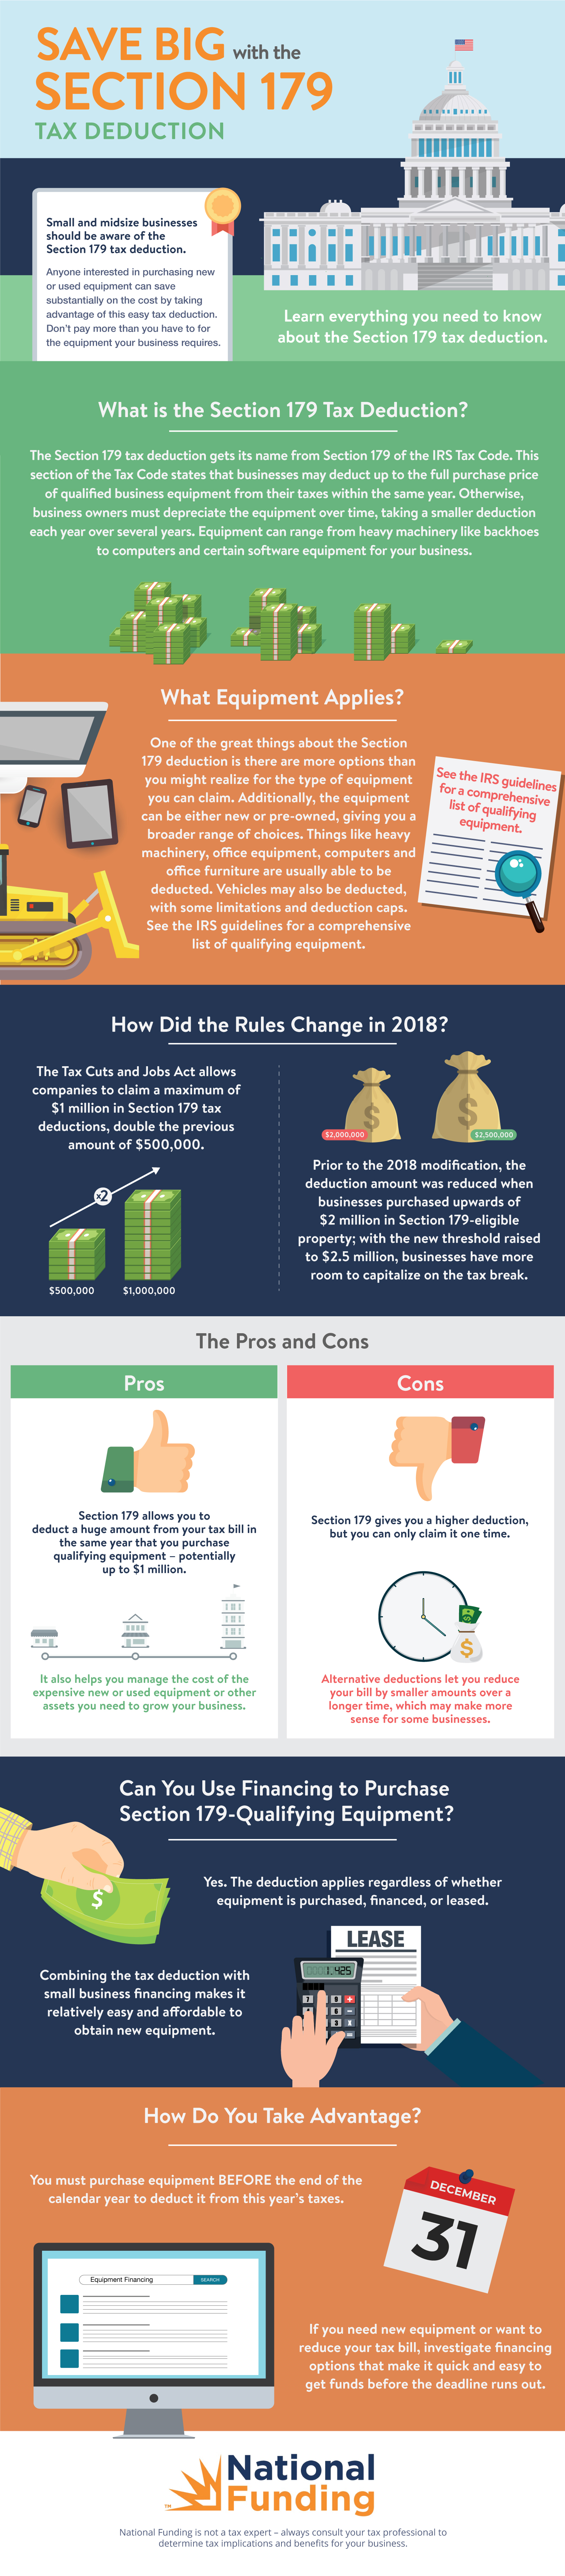 Infographic: Section 179 tax deduction